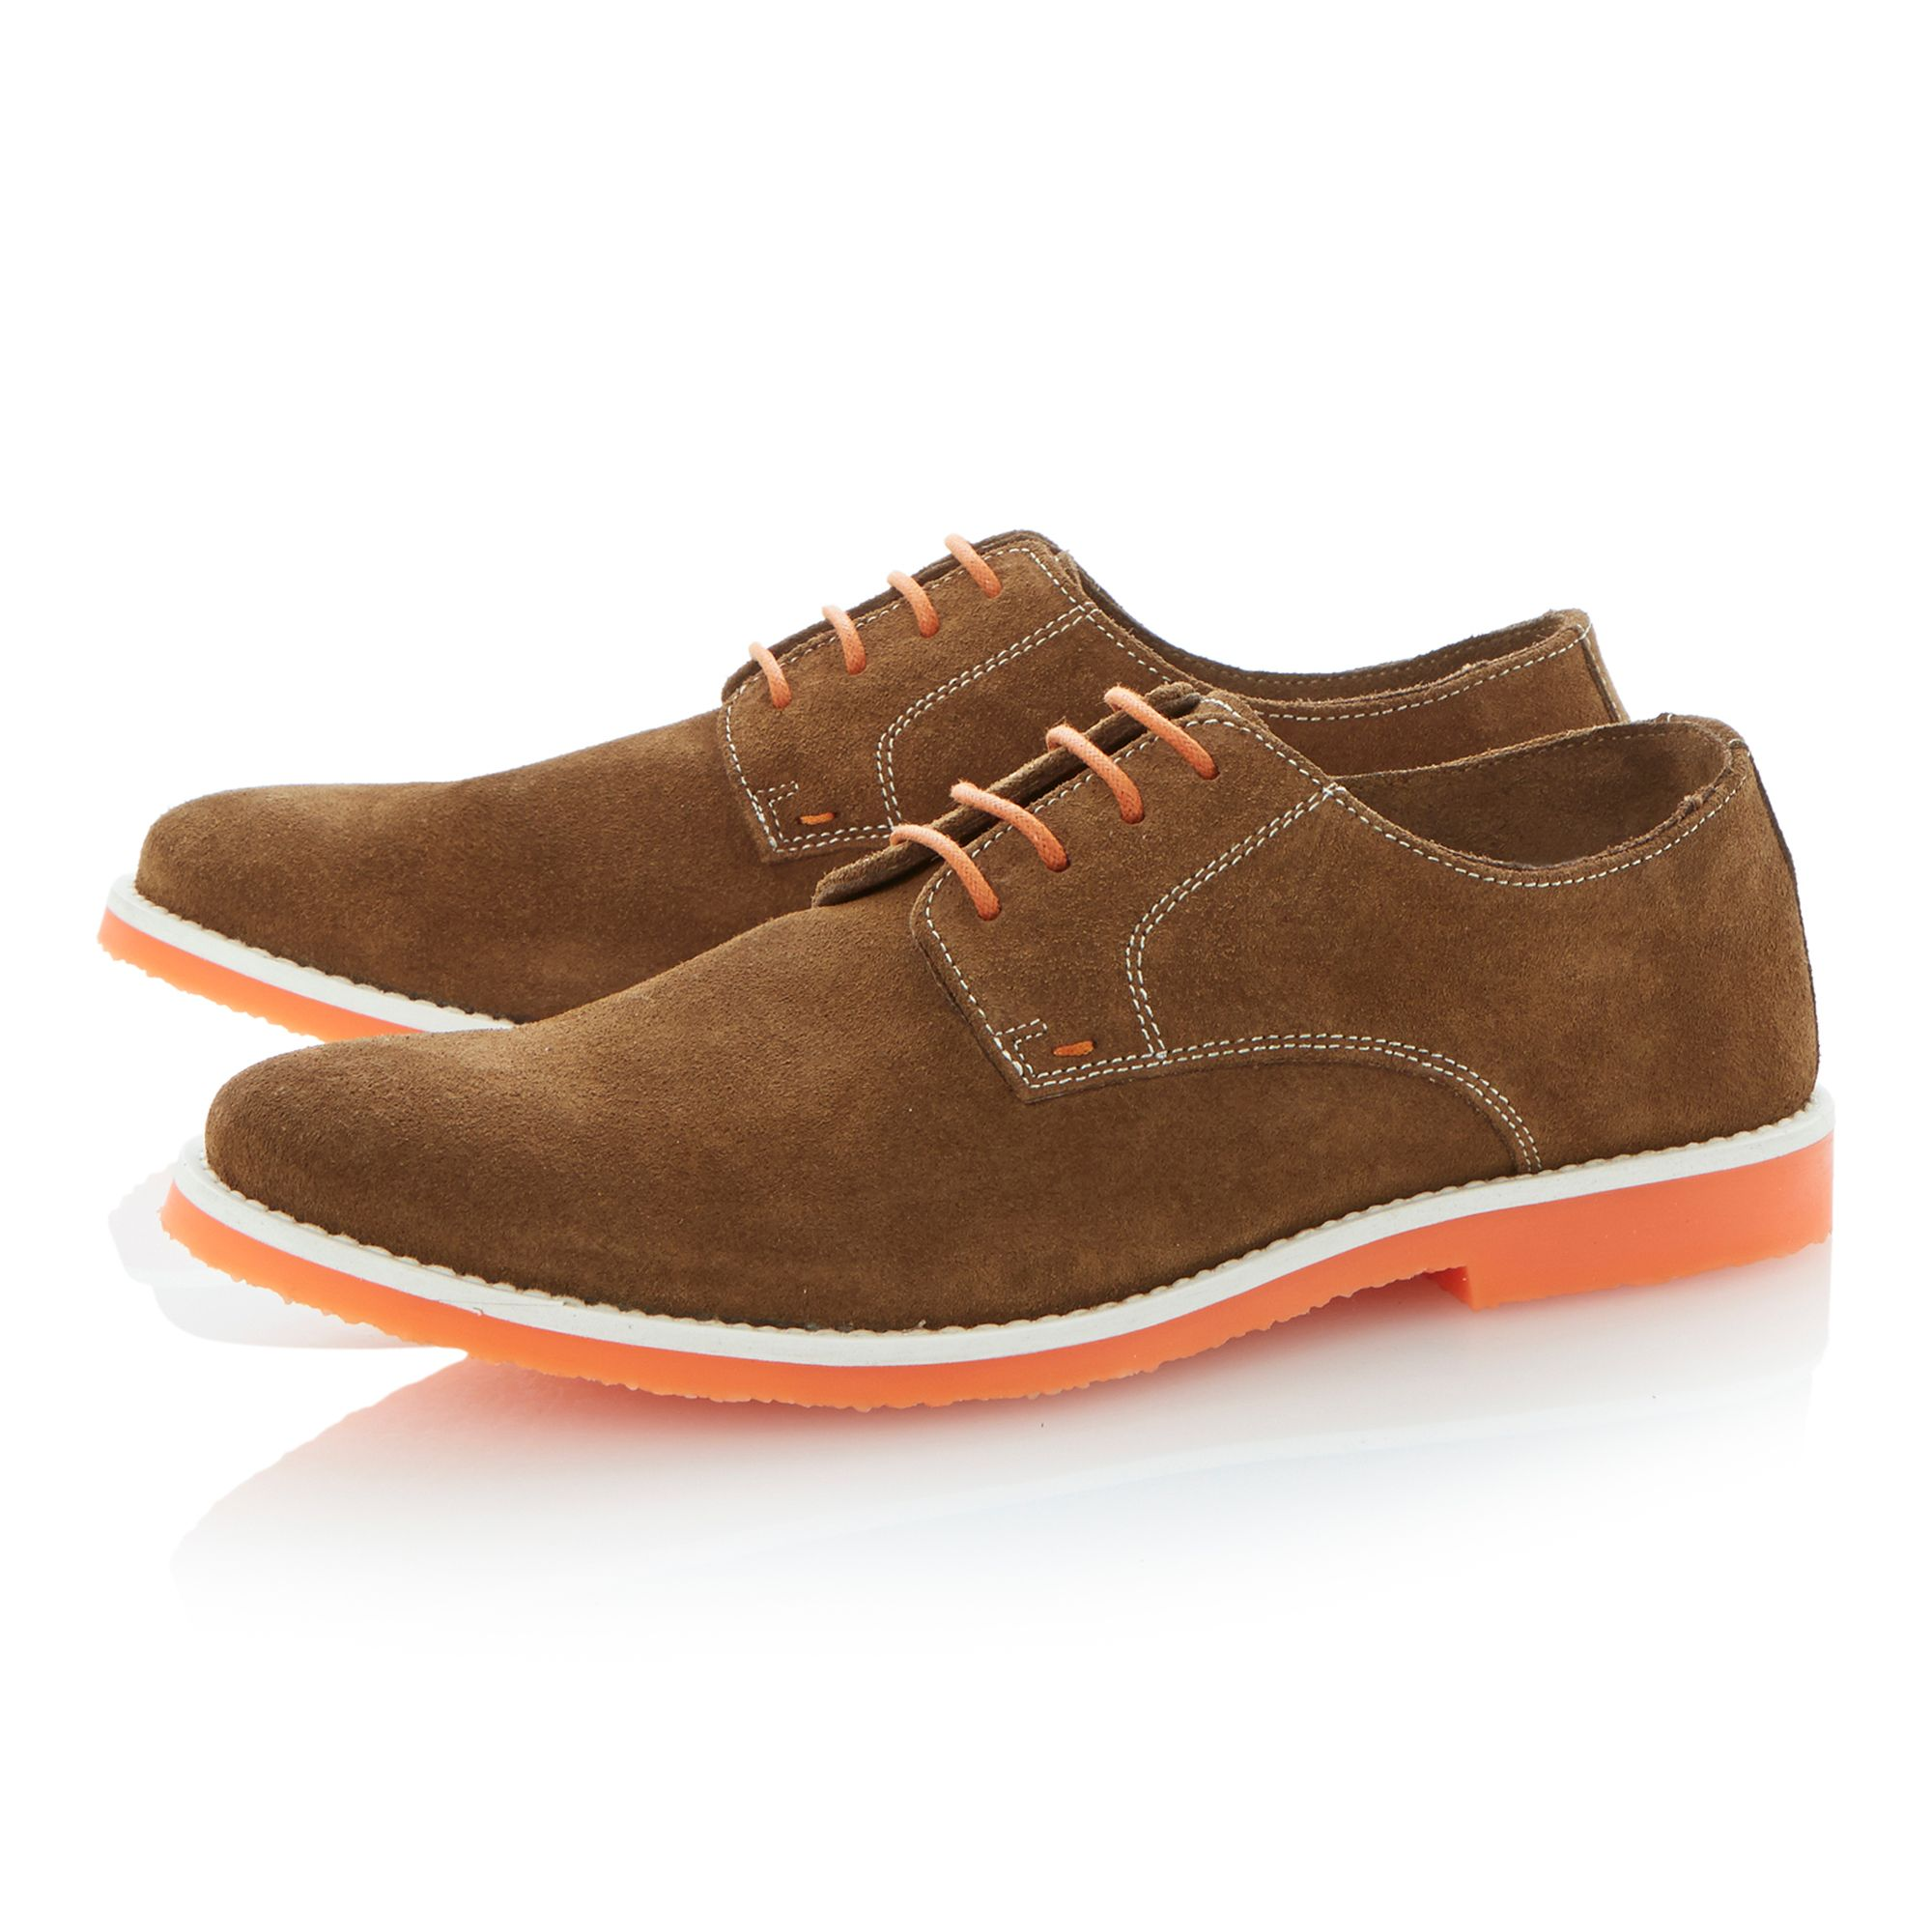 Bailey lace up colour pop unlined desert shoes